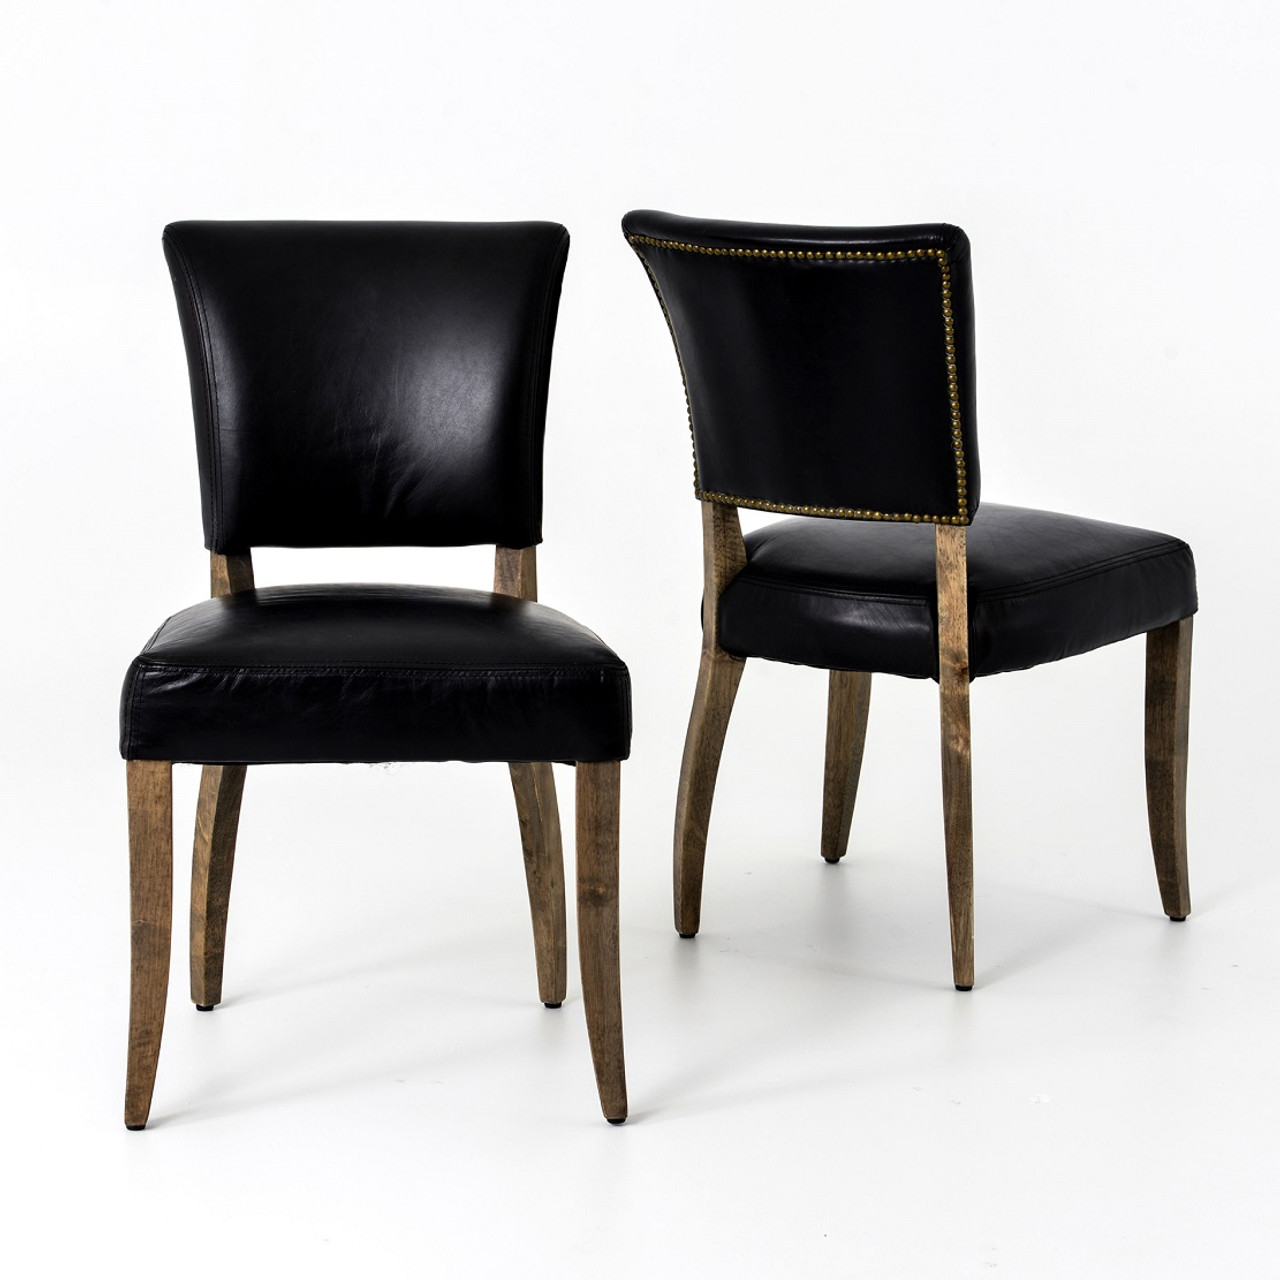 Dining Chairs Black Mimi Saddle Black Leather Dining Chair Zin Home